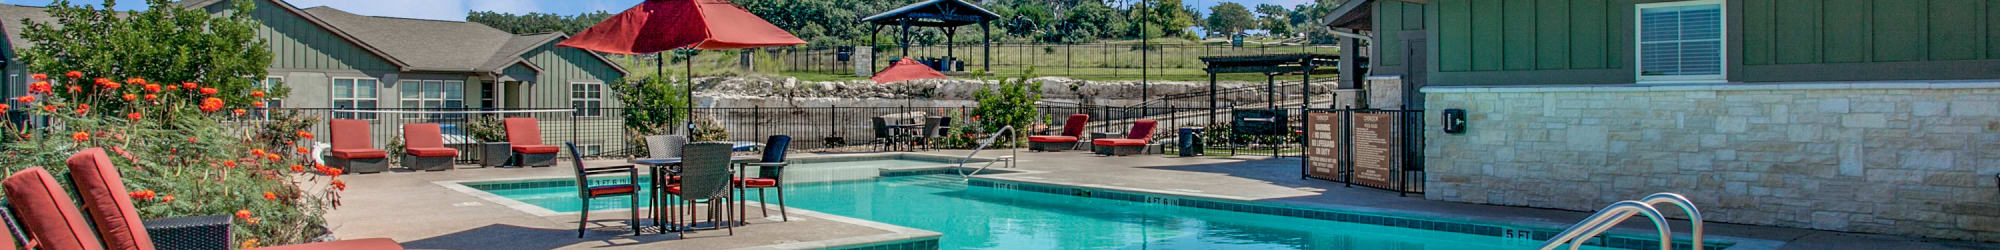 Apply to Overlook at Stone Oak Park in San Antonio, Texas